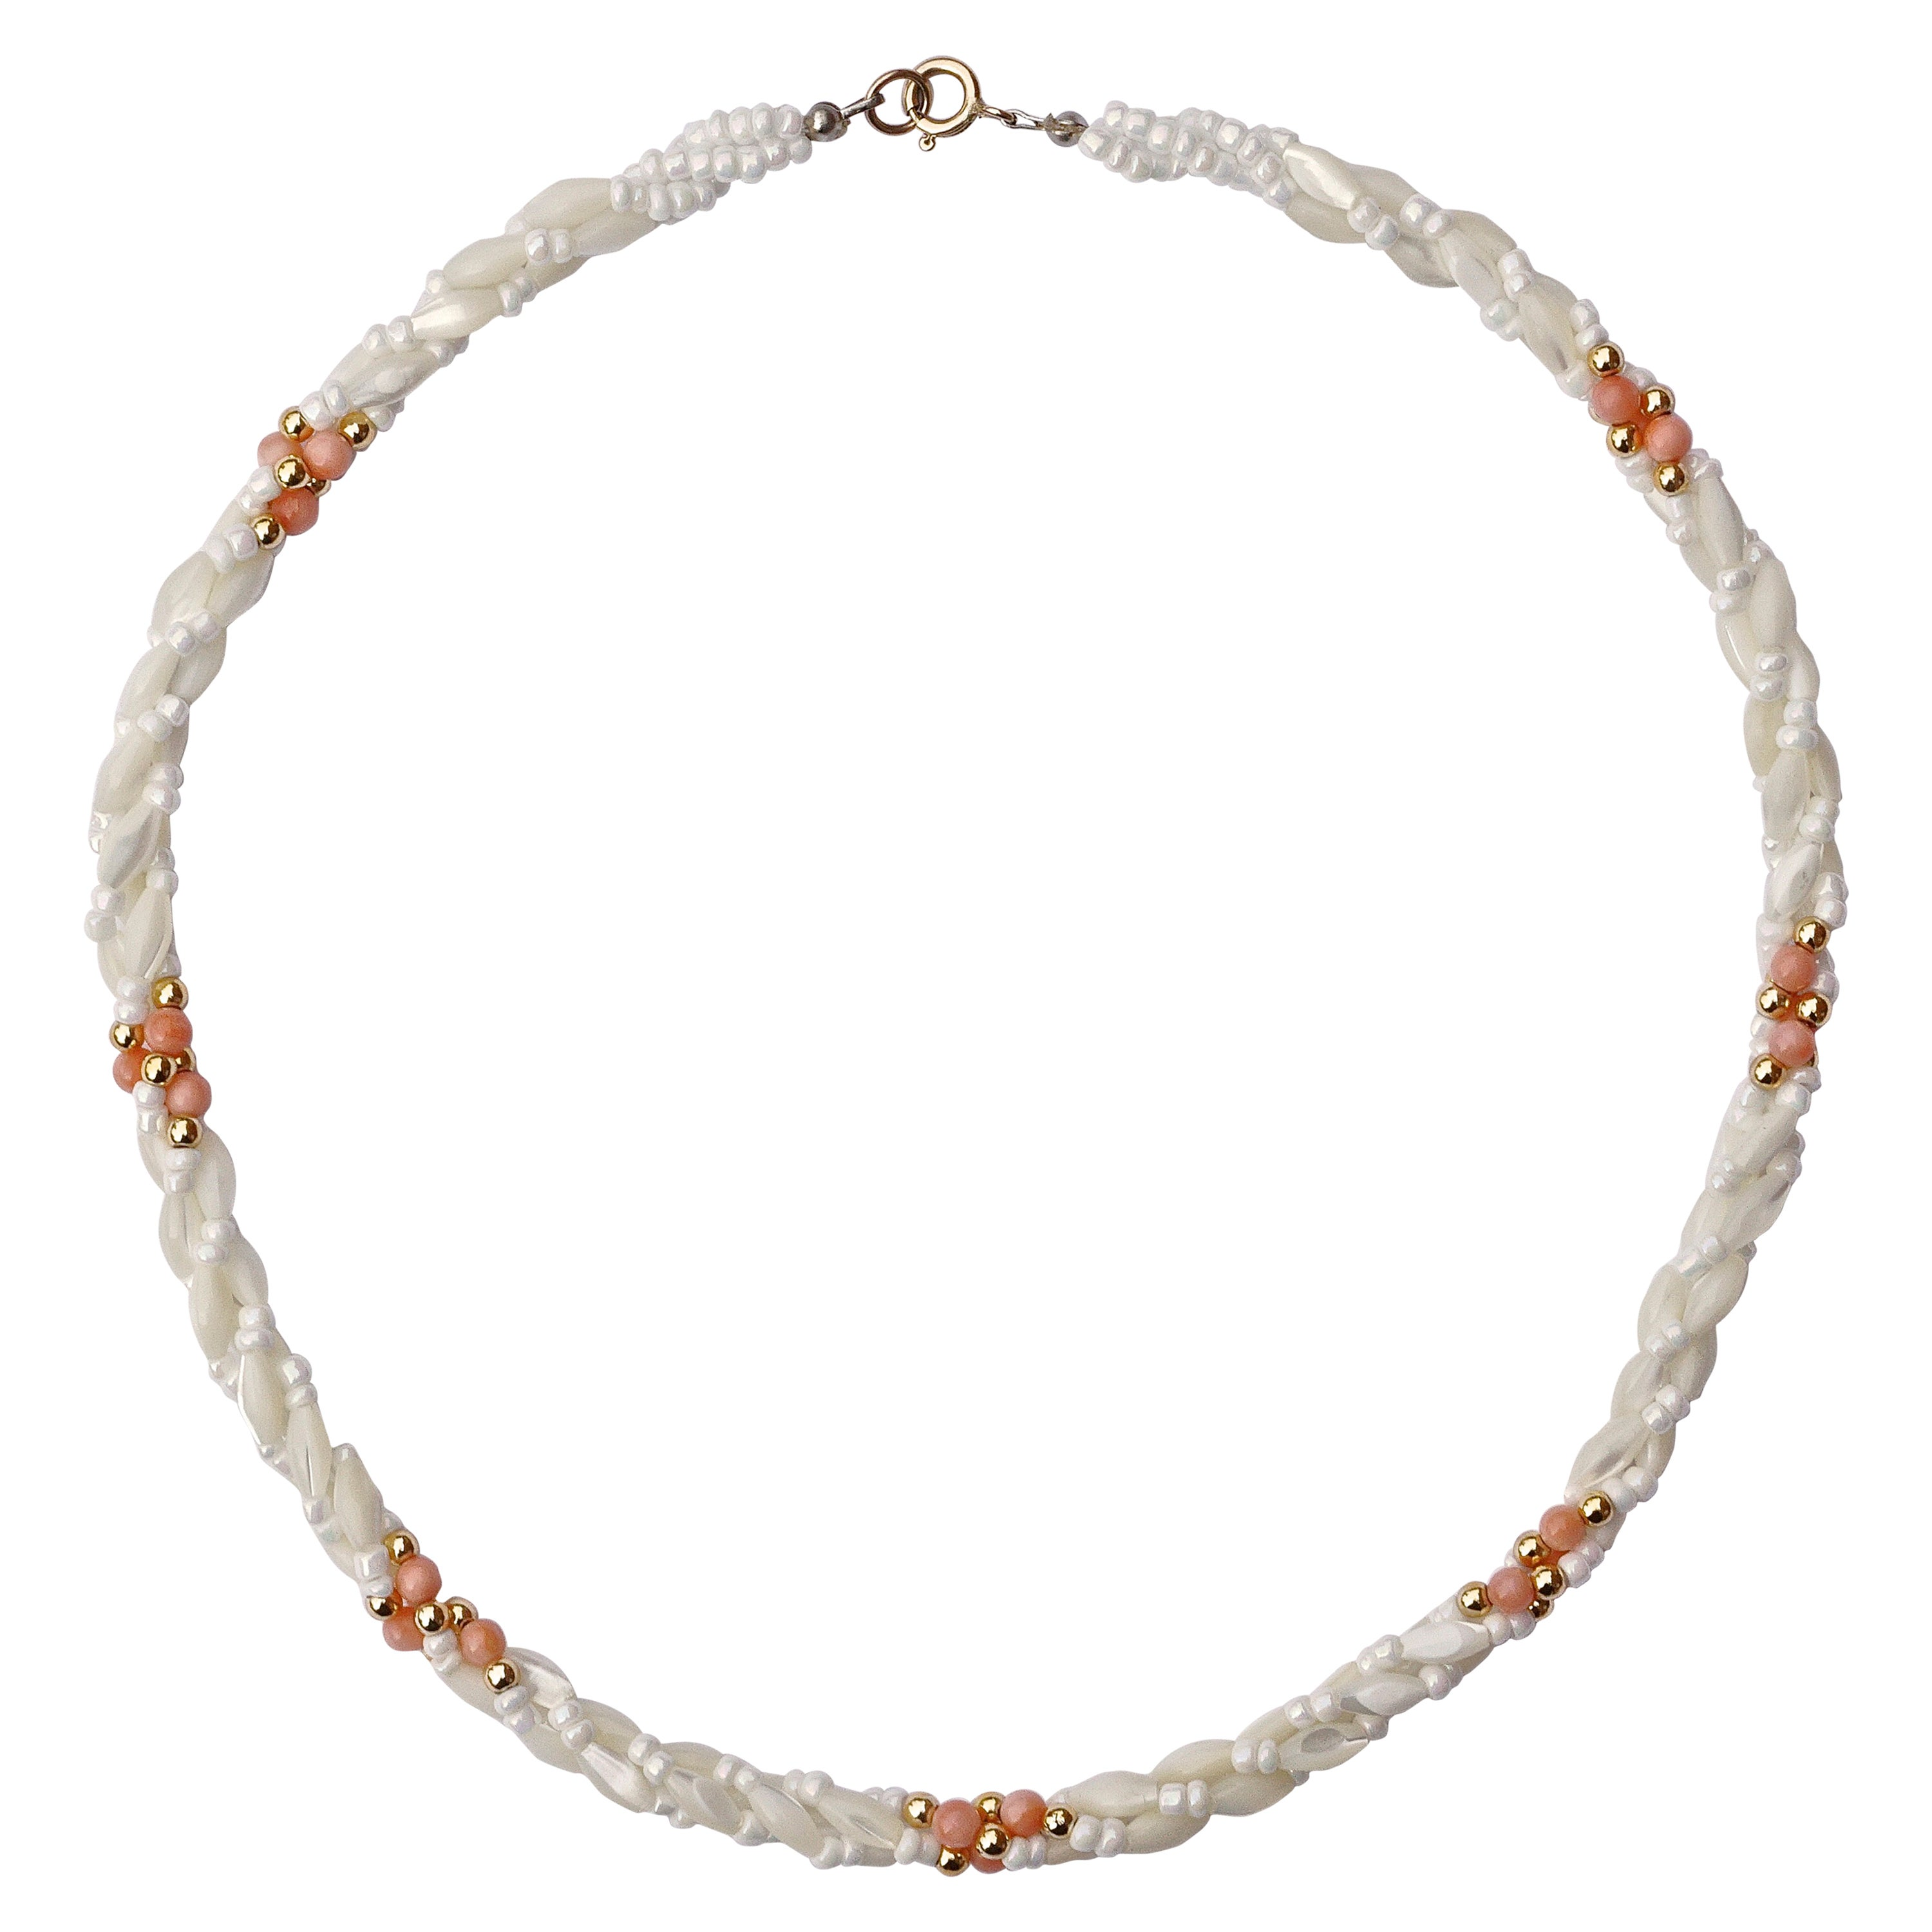 a28dc60ffd6b0 Twisted Triple Strand Coral Mother-of-Pearl Vintage Bead Necklace